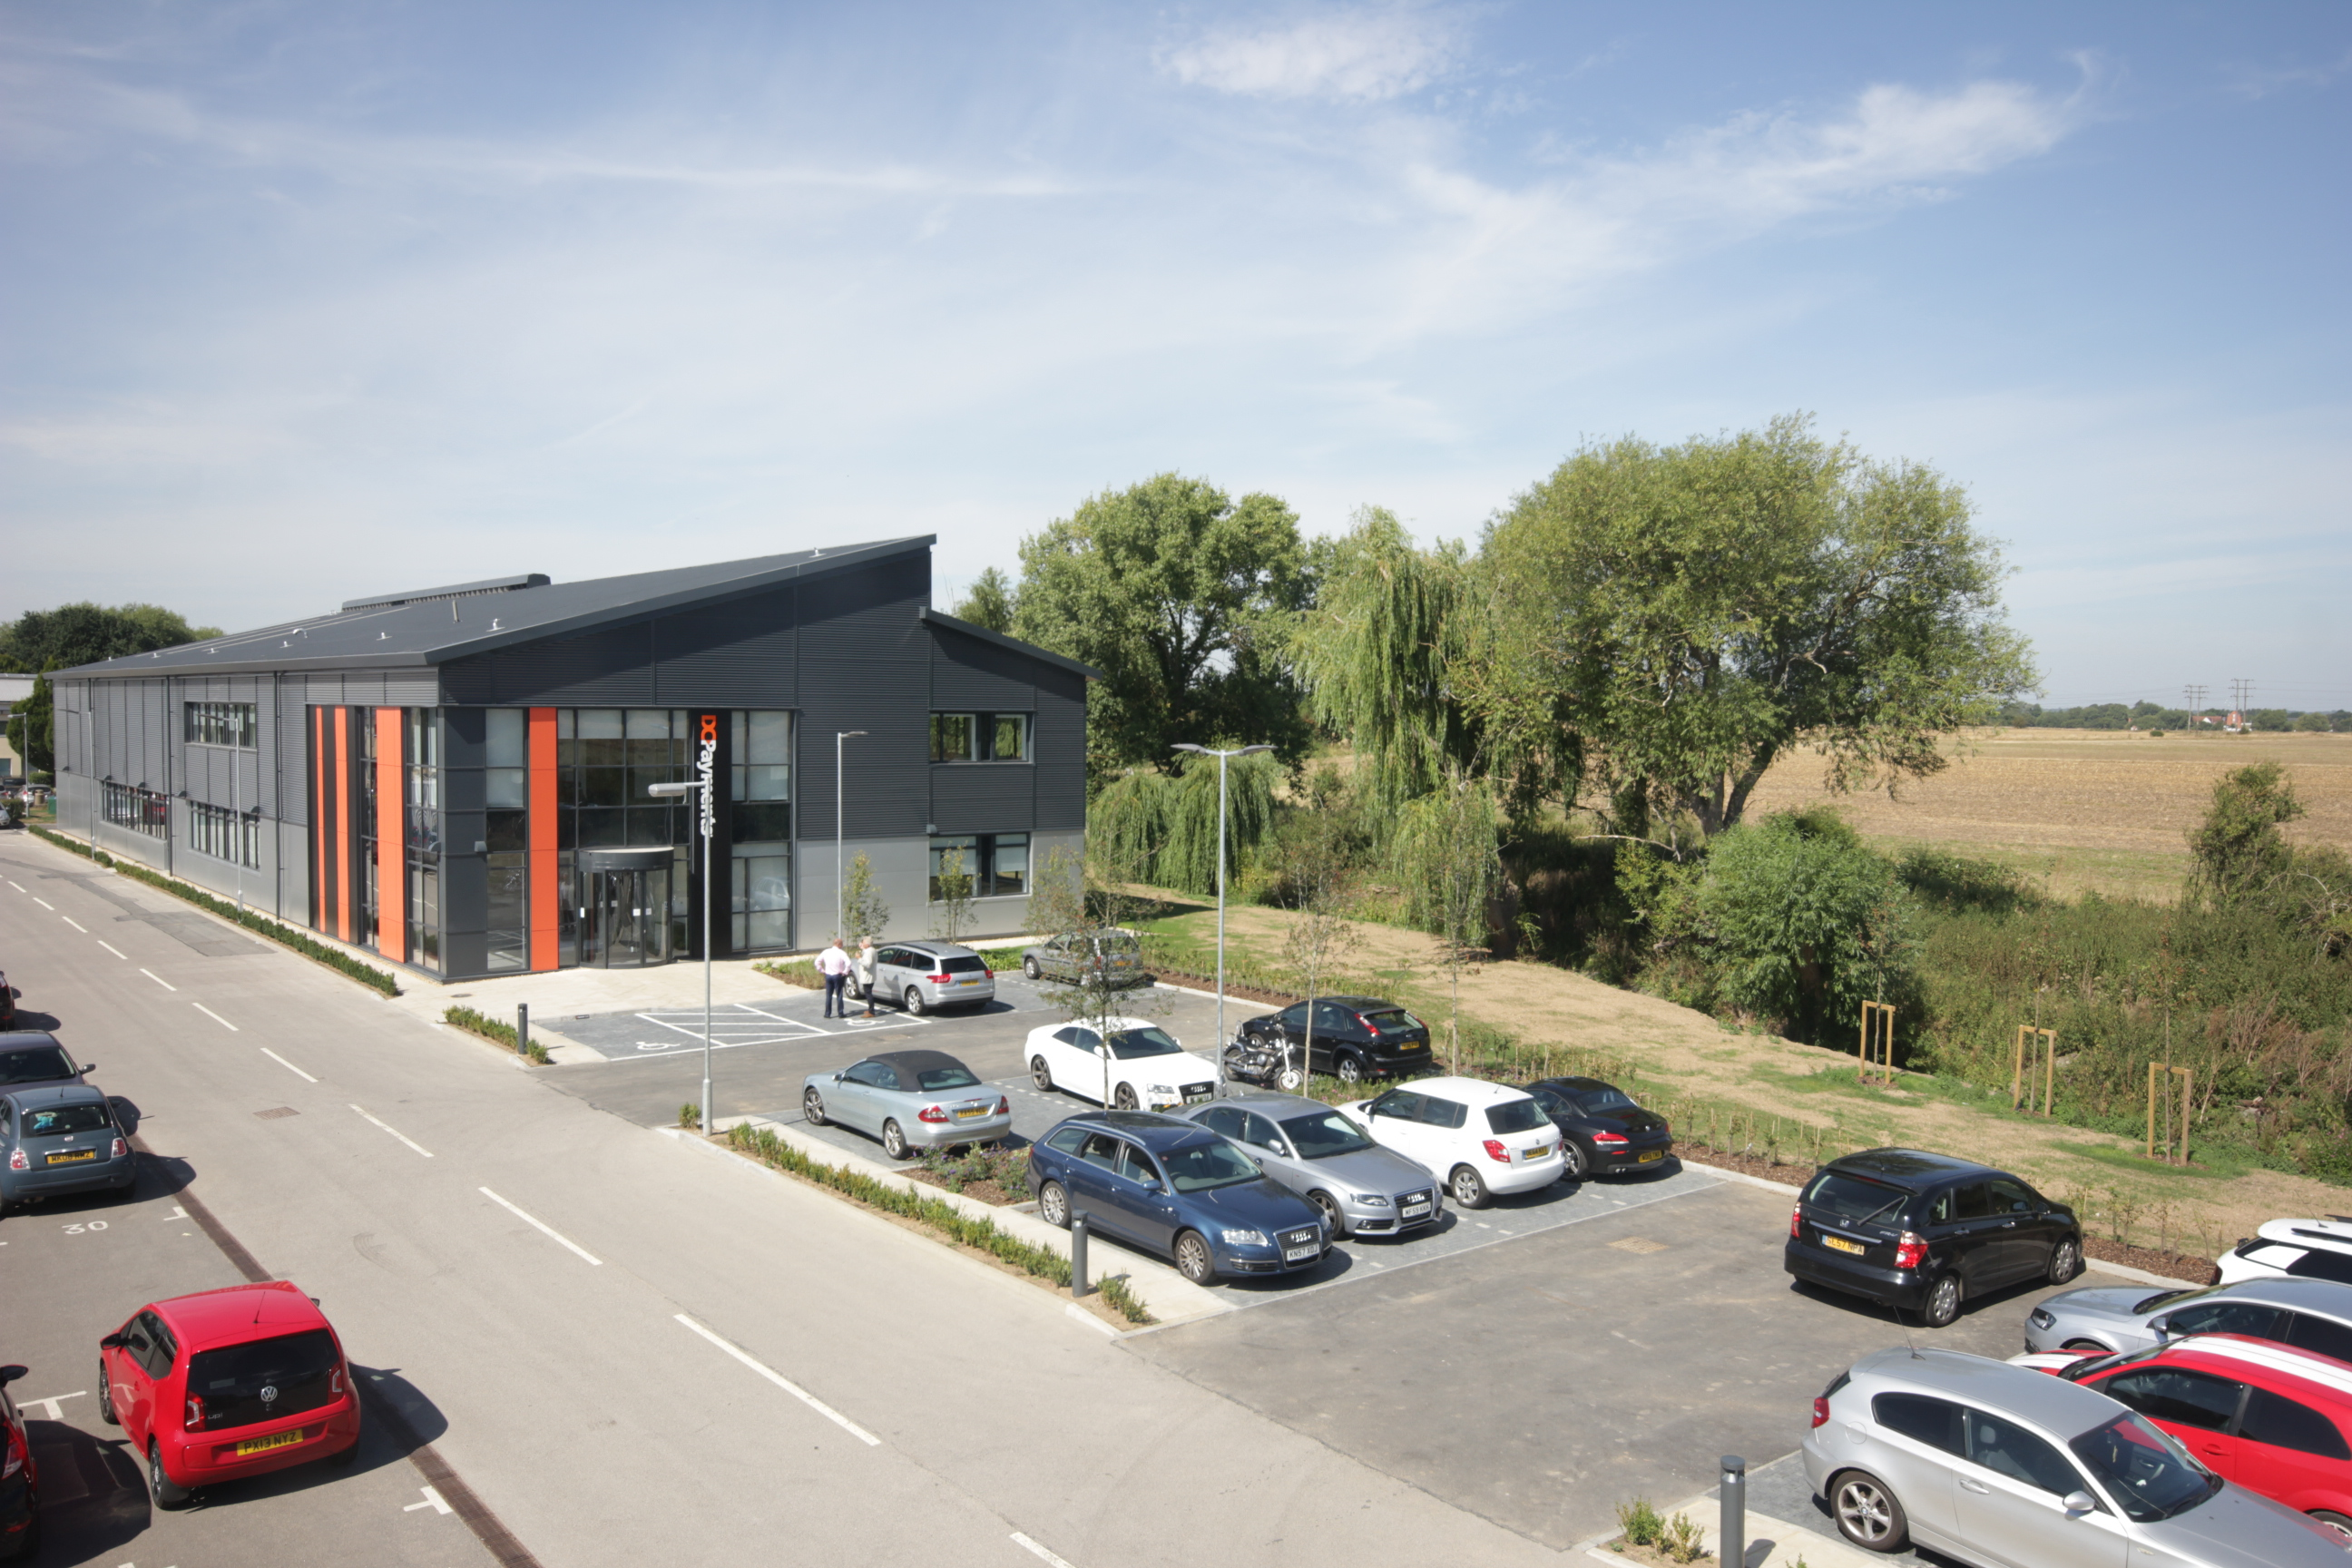 155 Brook Drive office on completion